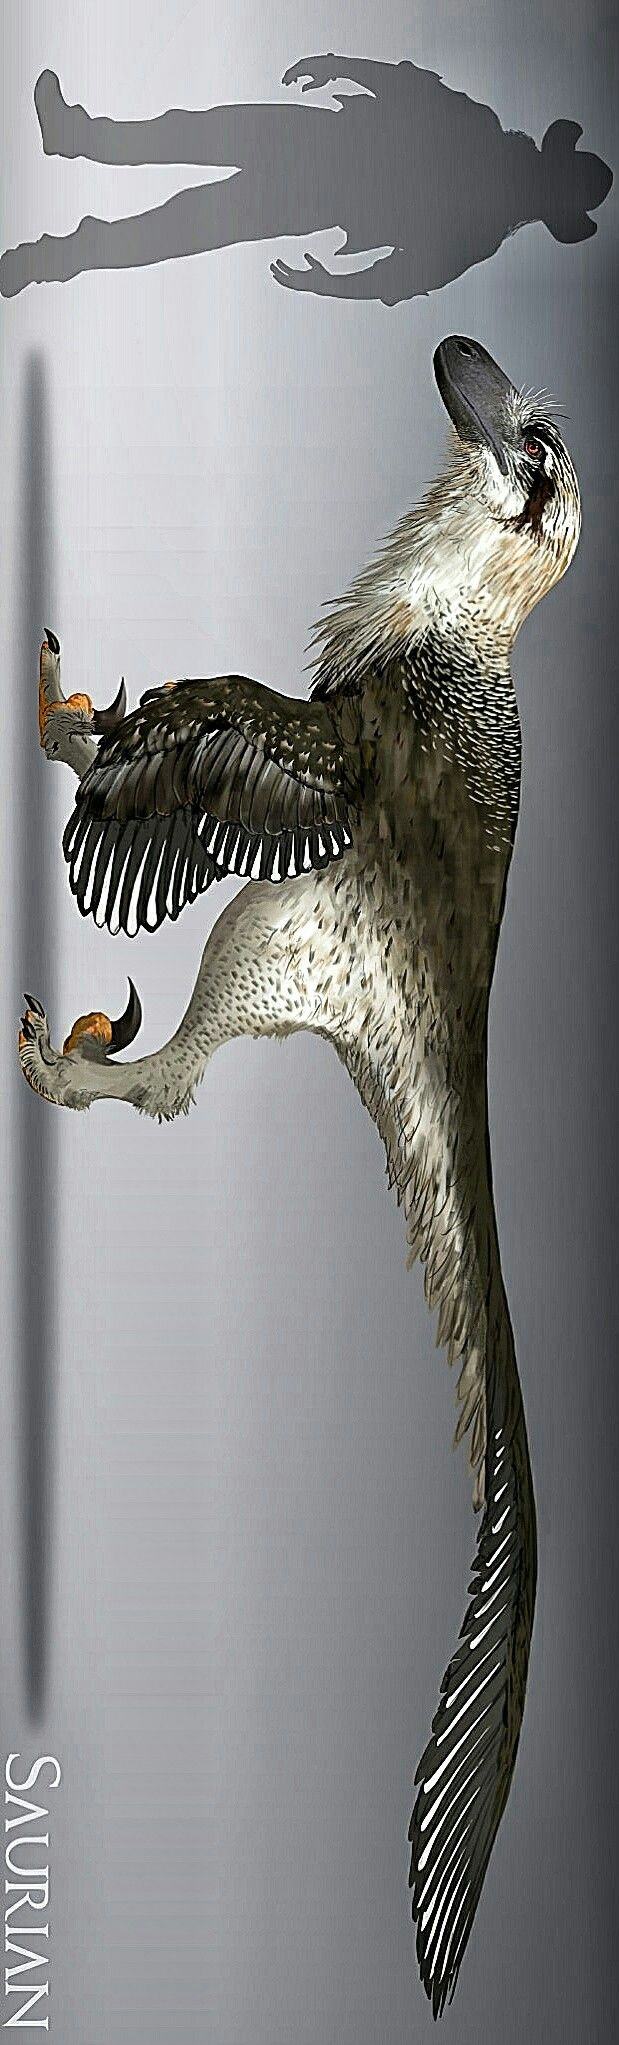 Acheroraptor is an extinct genus of dromaeosaurid theropod dinosaur known from the latest Maastrichtian Hell Creek Formation of Montana, United States. It contains a single species, Acheroraptor temertyorum. A. temertyorum is one of the two geologically youngest known species of dromaeosaurids, the other being Dakotaraptor, which is also known from Hell Cree